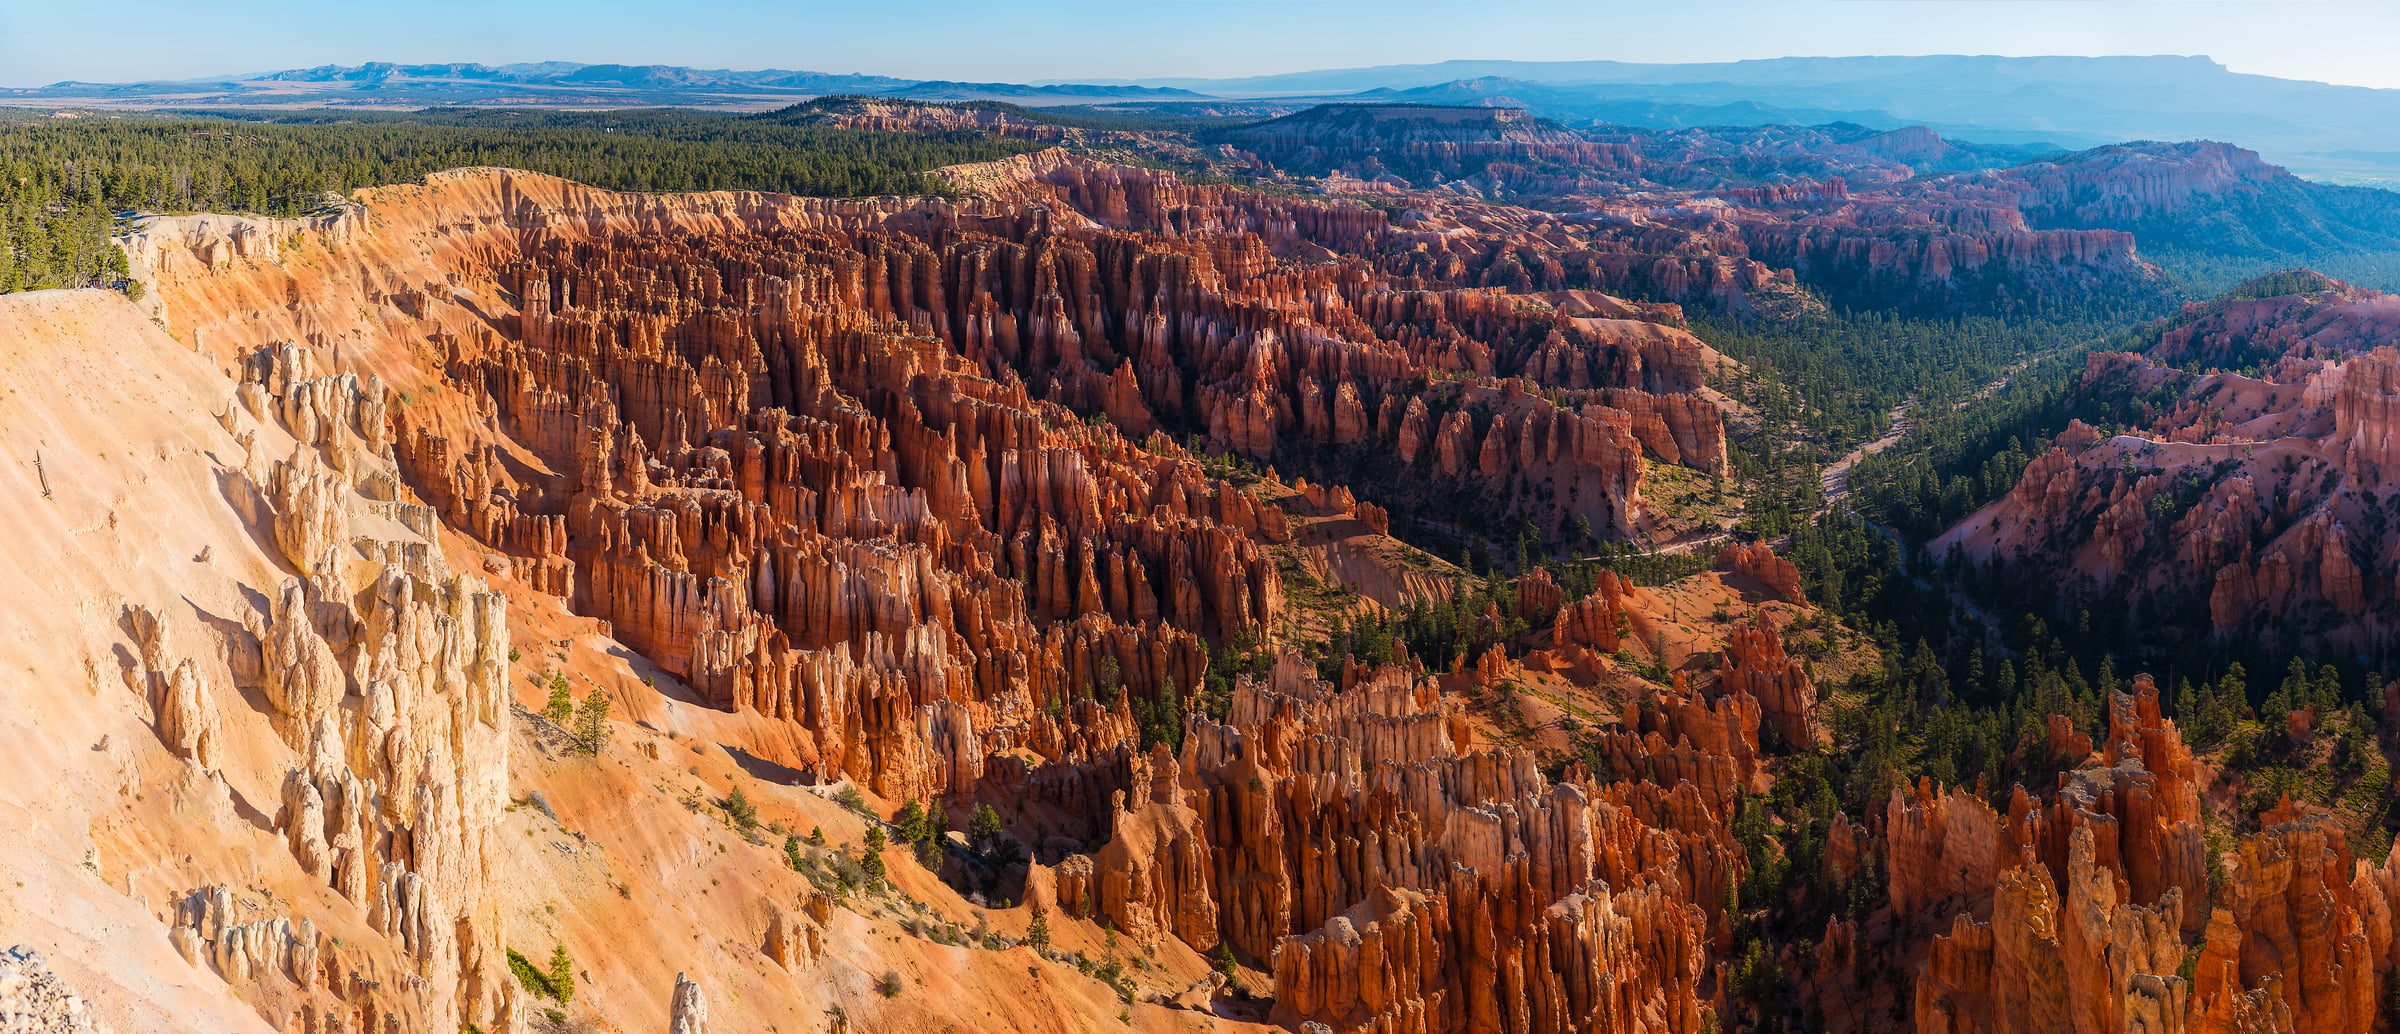 491 megapixels! A very high resolution, large-format VAST photo print of the American West; landscape panorama photograph created by Jim Tarpo in Bryce Canyon, Utah